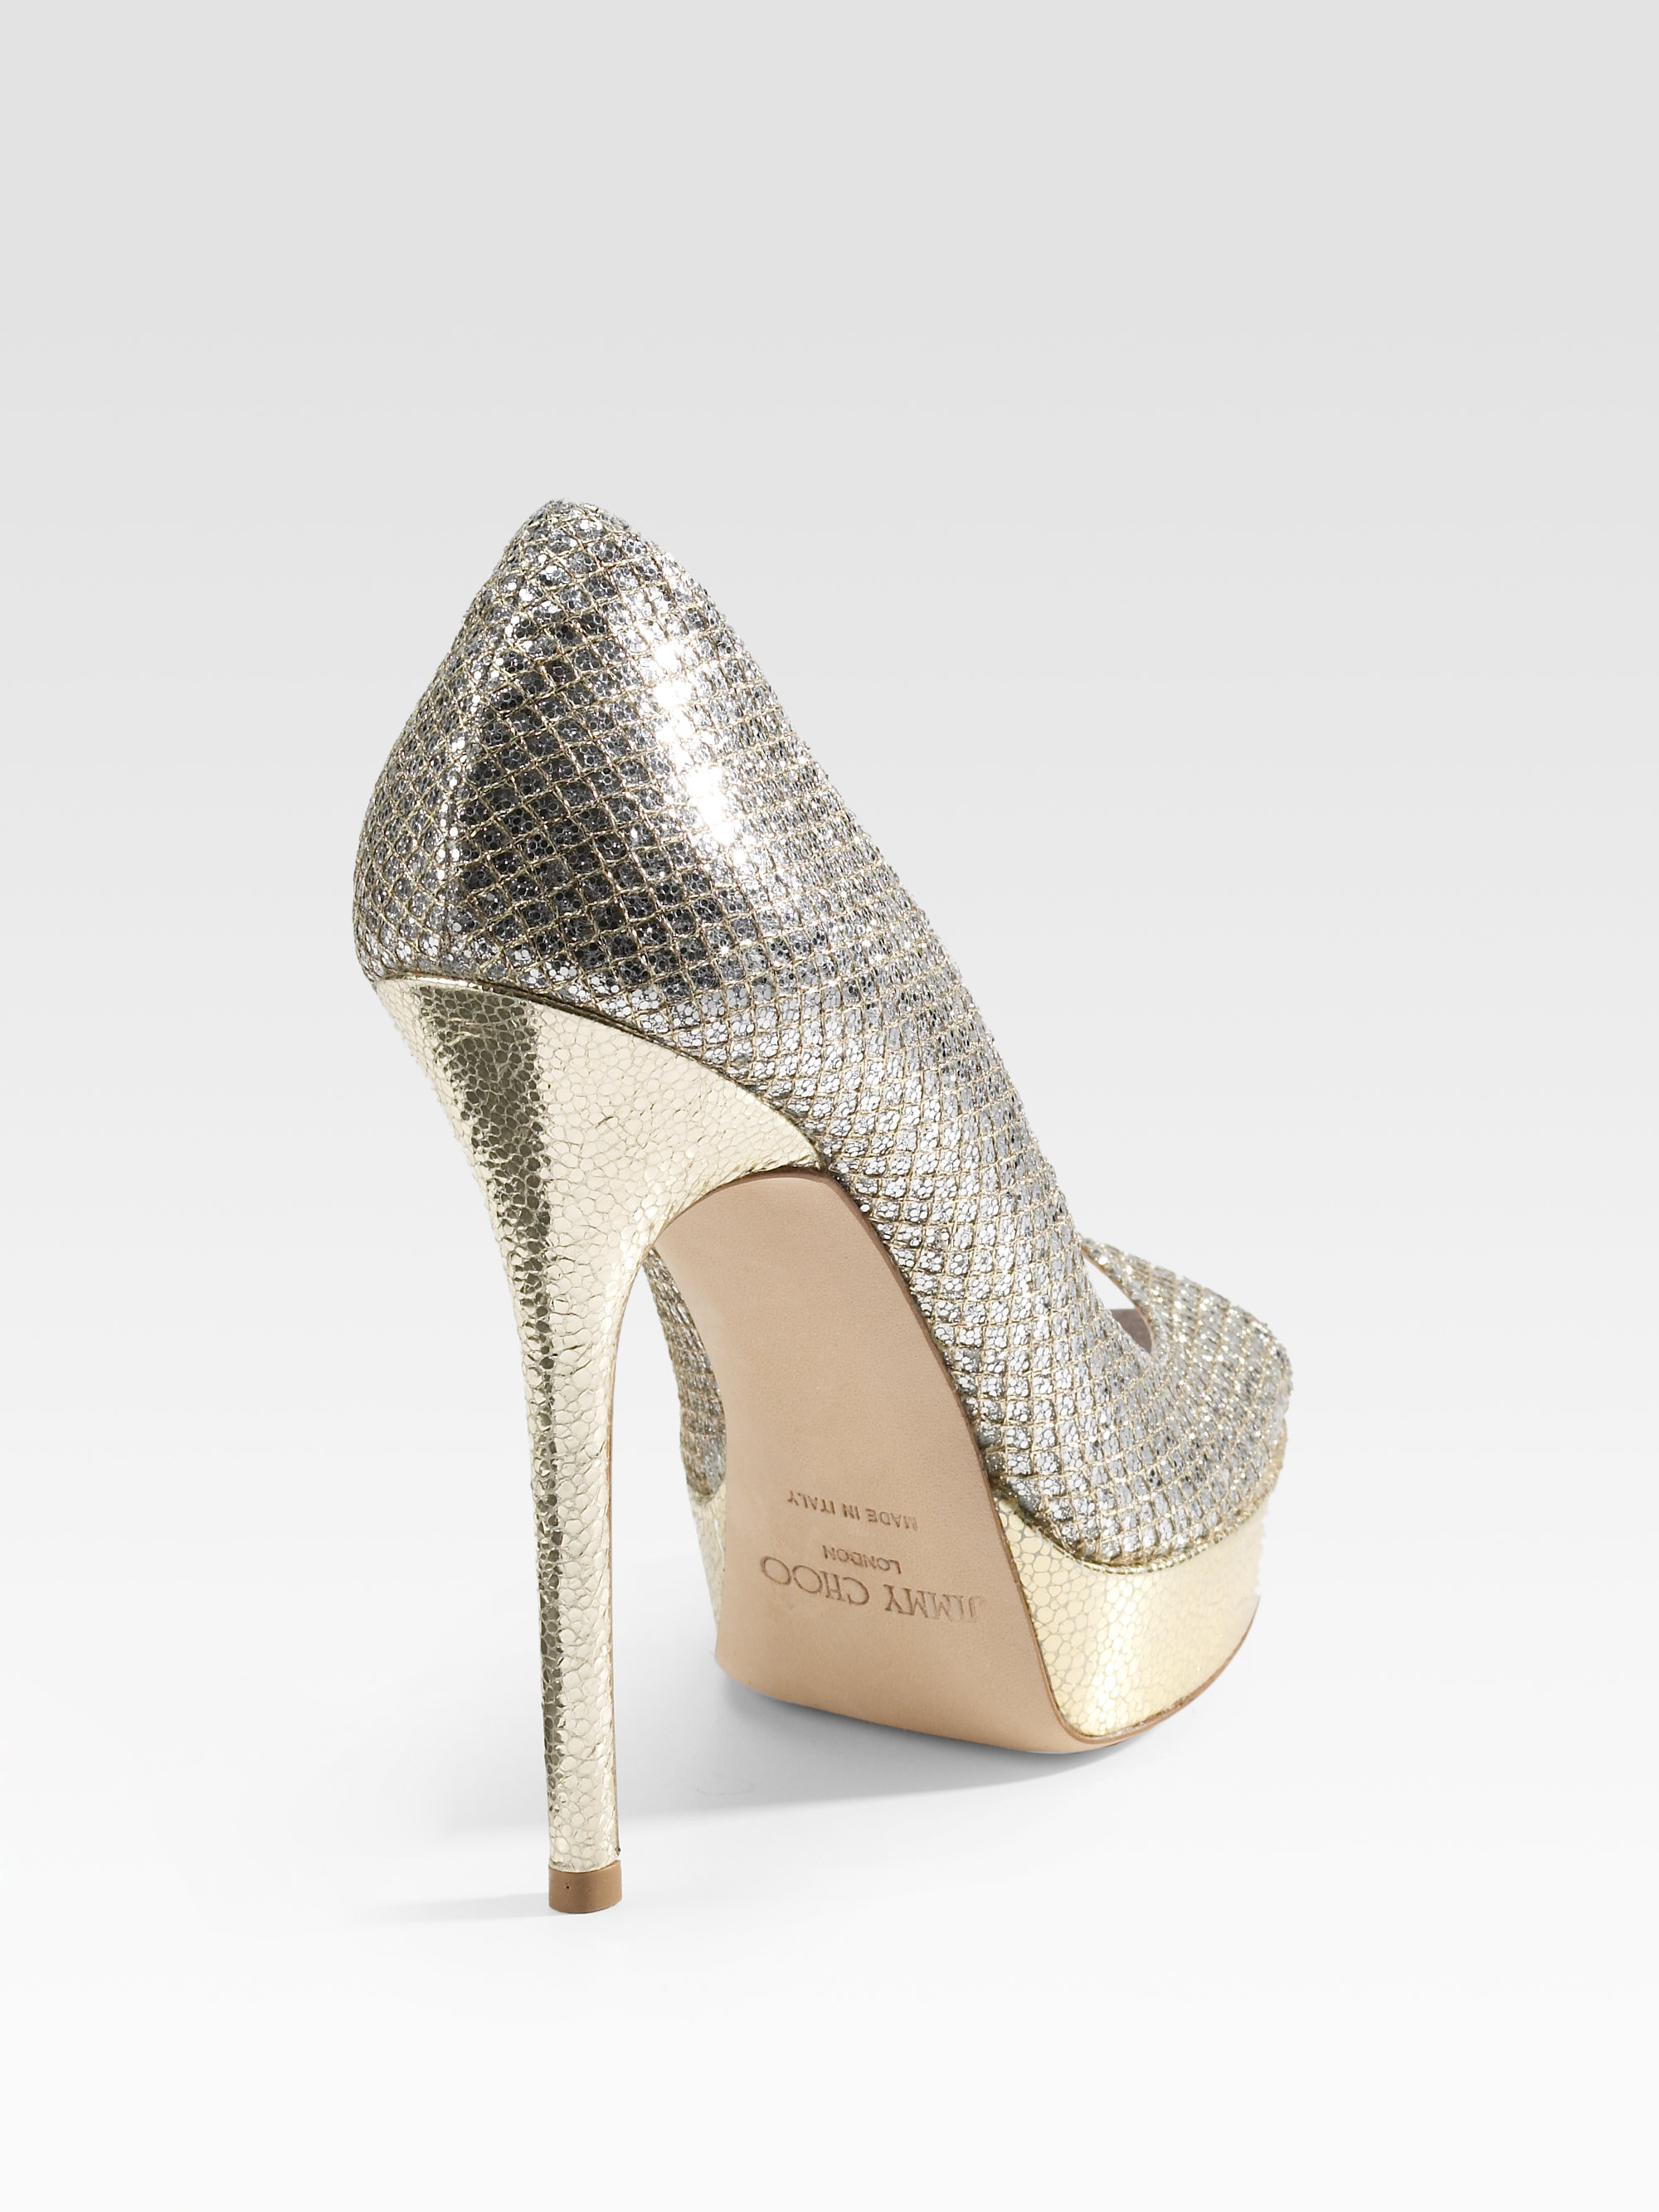 4a8d0bd1ba8 Gallery. Previously sold at  Saks Fifth Avenue · Women s Jimmy Choo Glitter